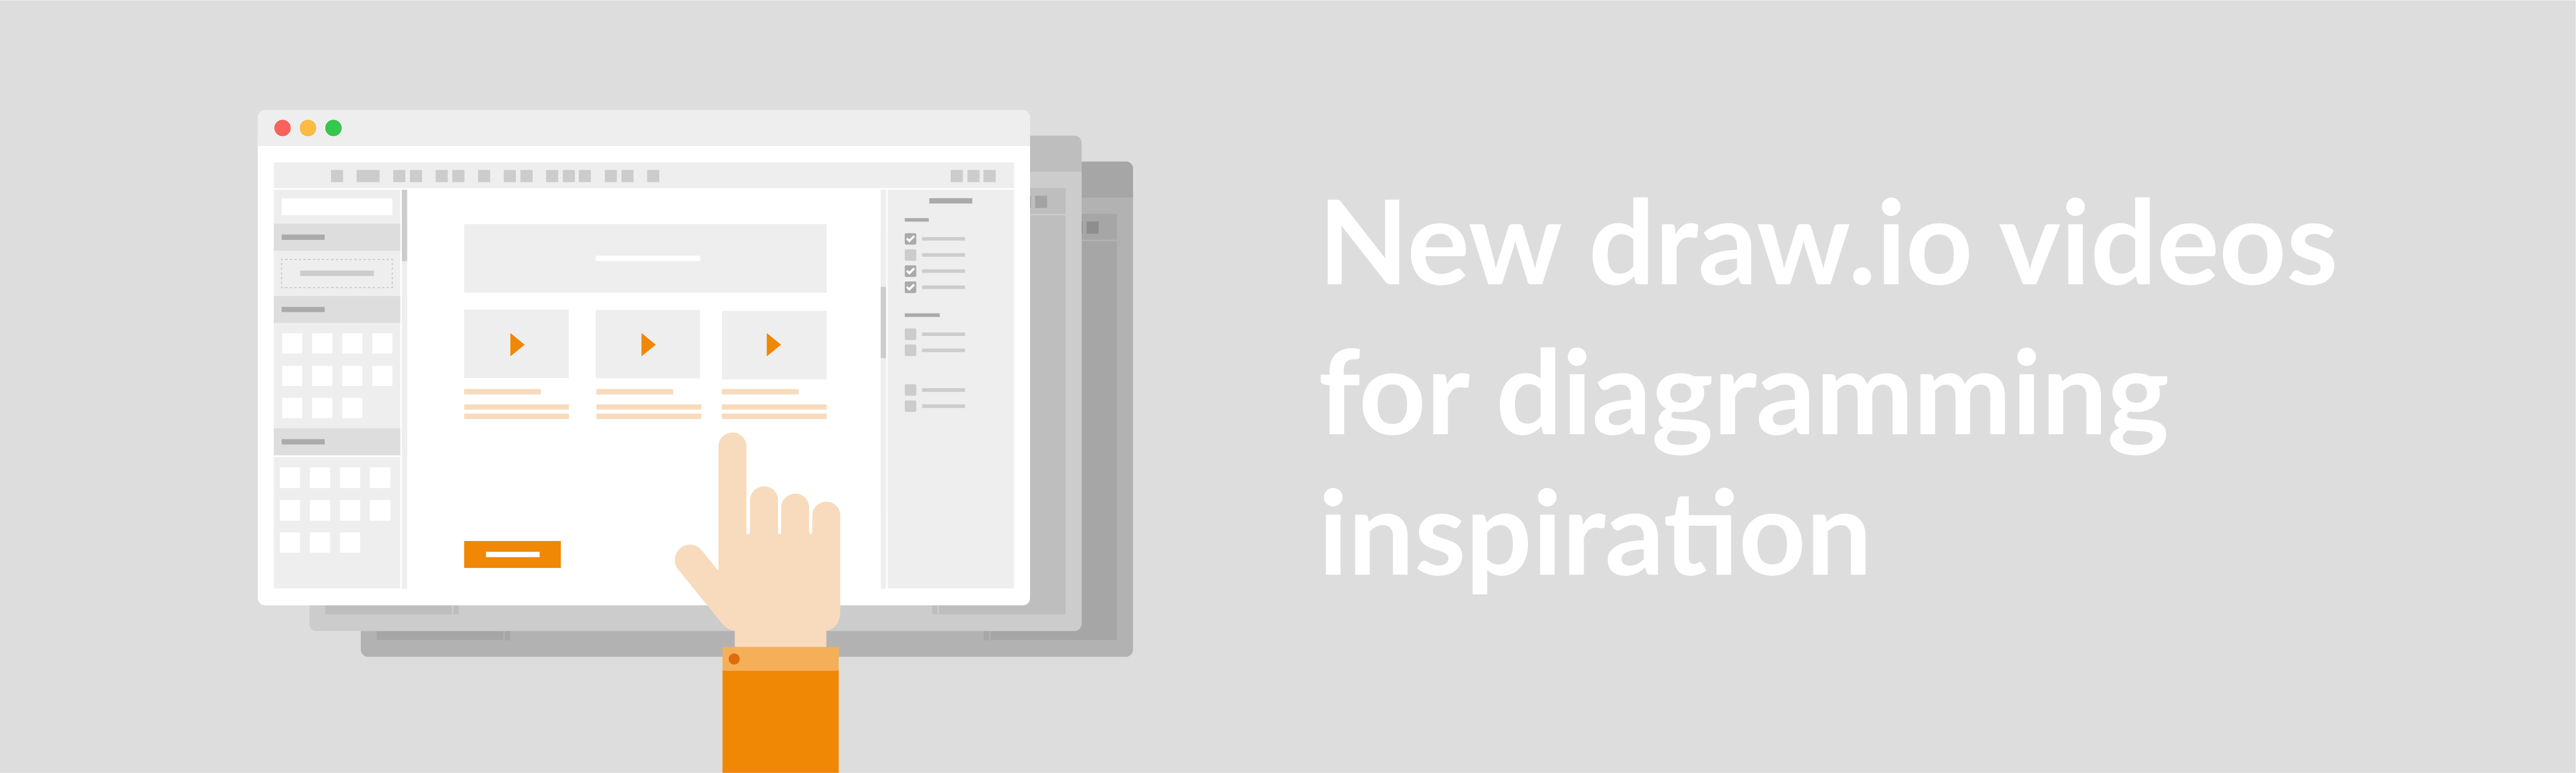 New draw.io videos for diagramming inspiration.